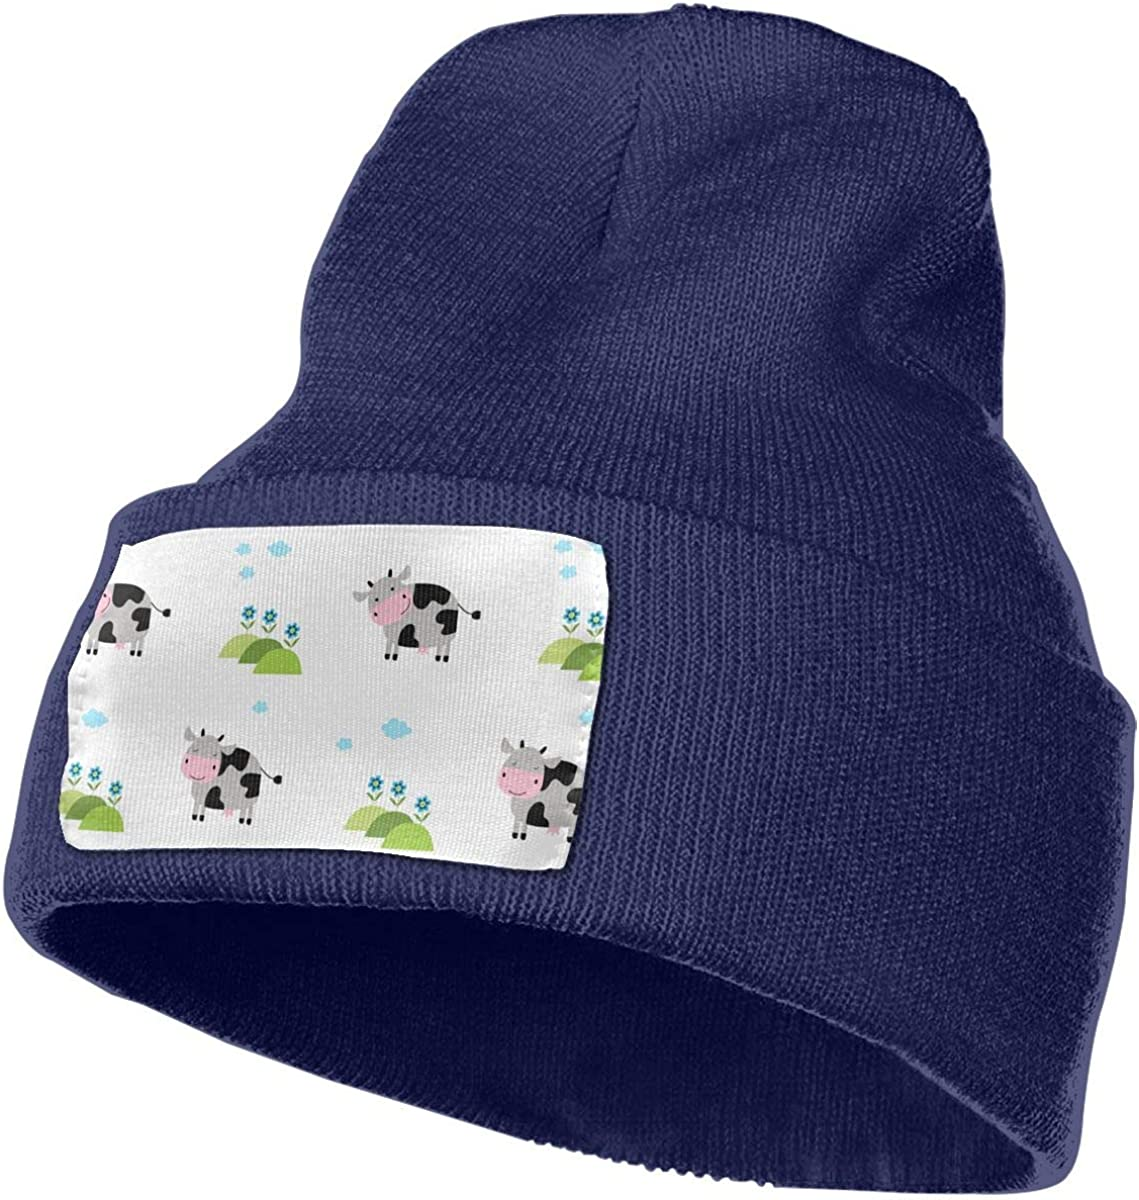 TAOMAP89 Cute Cow Skull Caps Women and Men Winter Warm Stretchy Knitting Beanie Hats